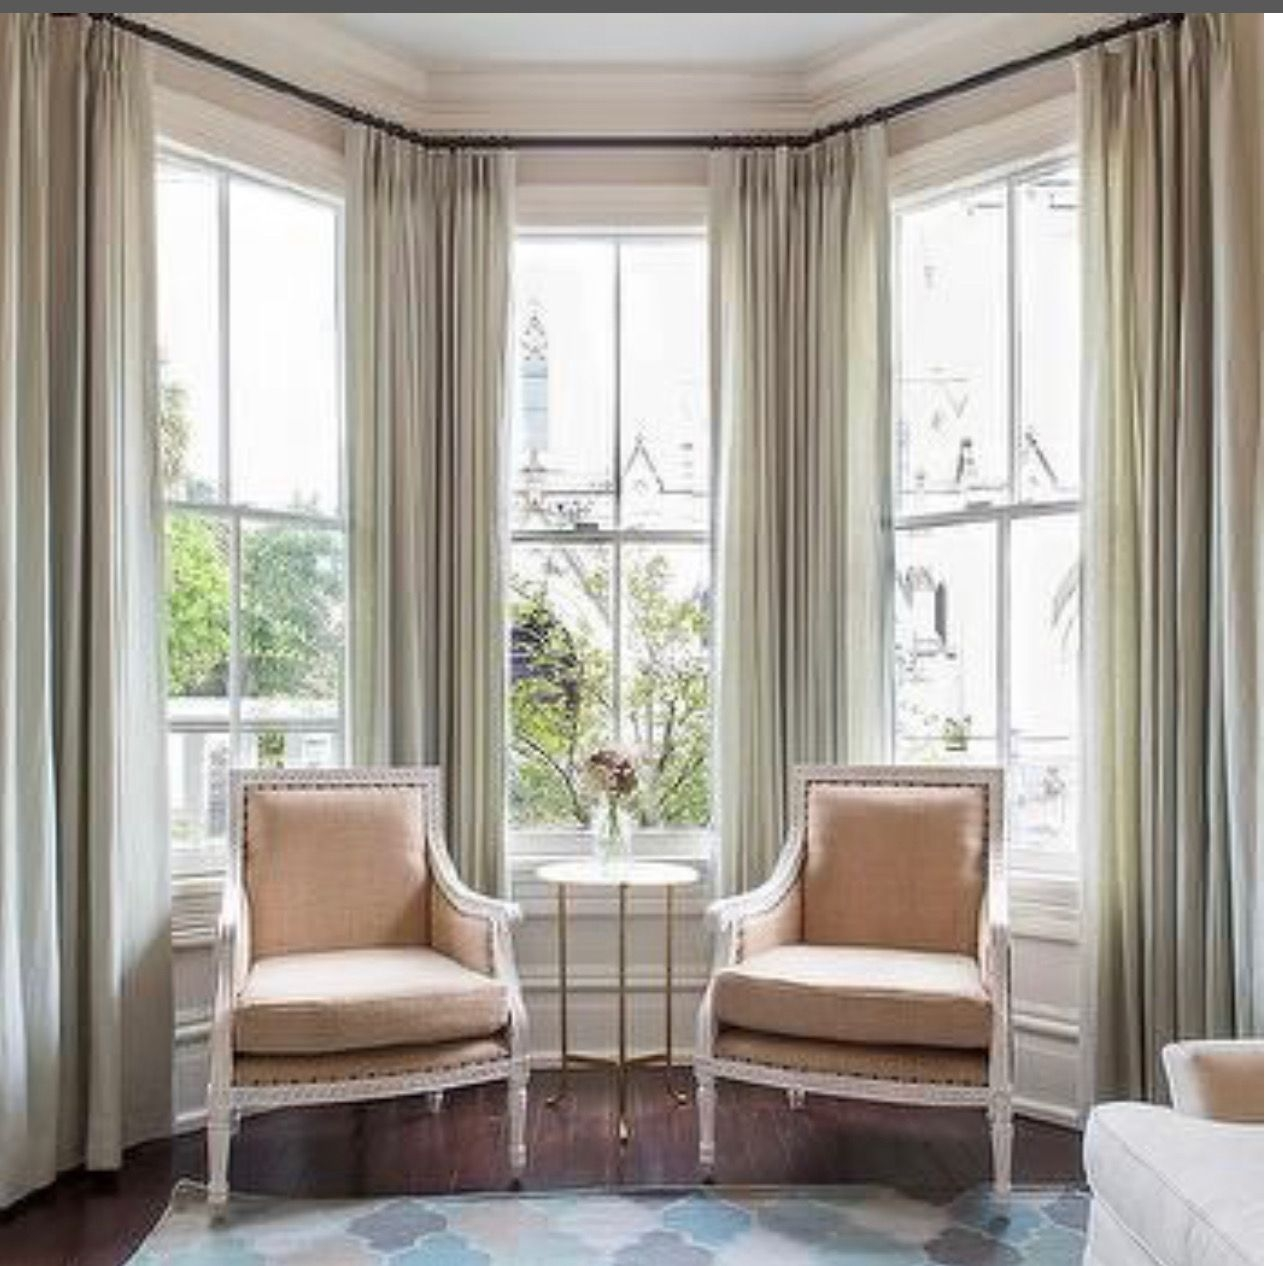 Curtains For Bay Windows You Ll Love In, Curtain Ideas For Bay Windows In Living Room